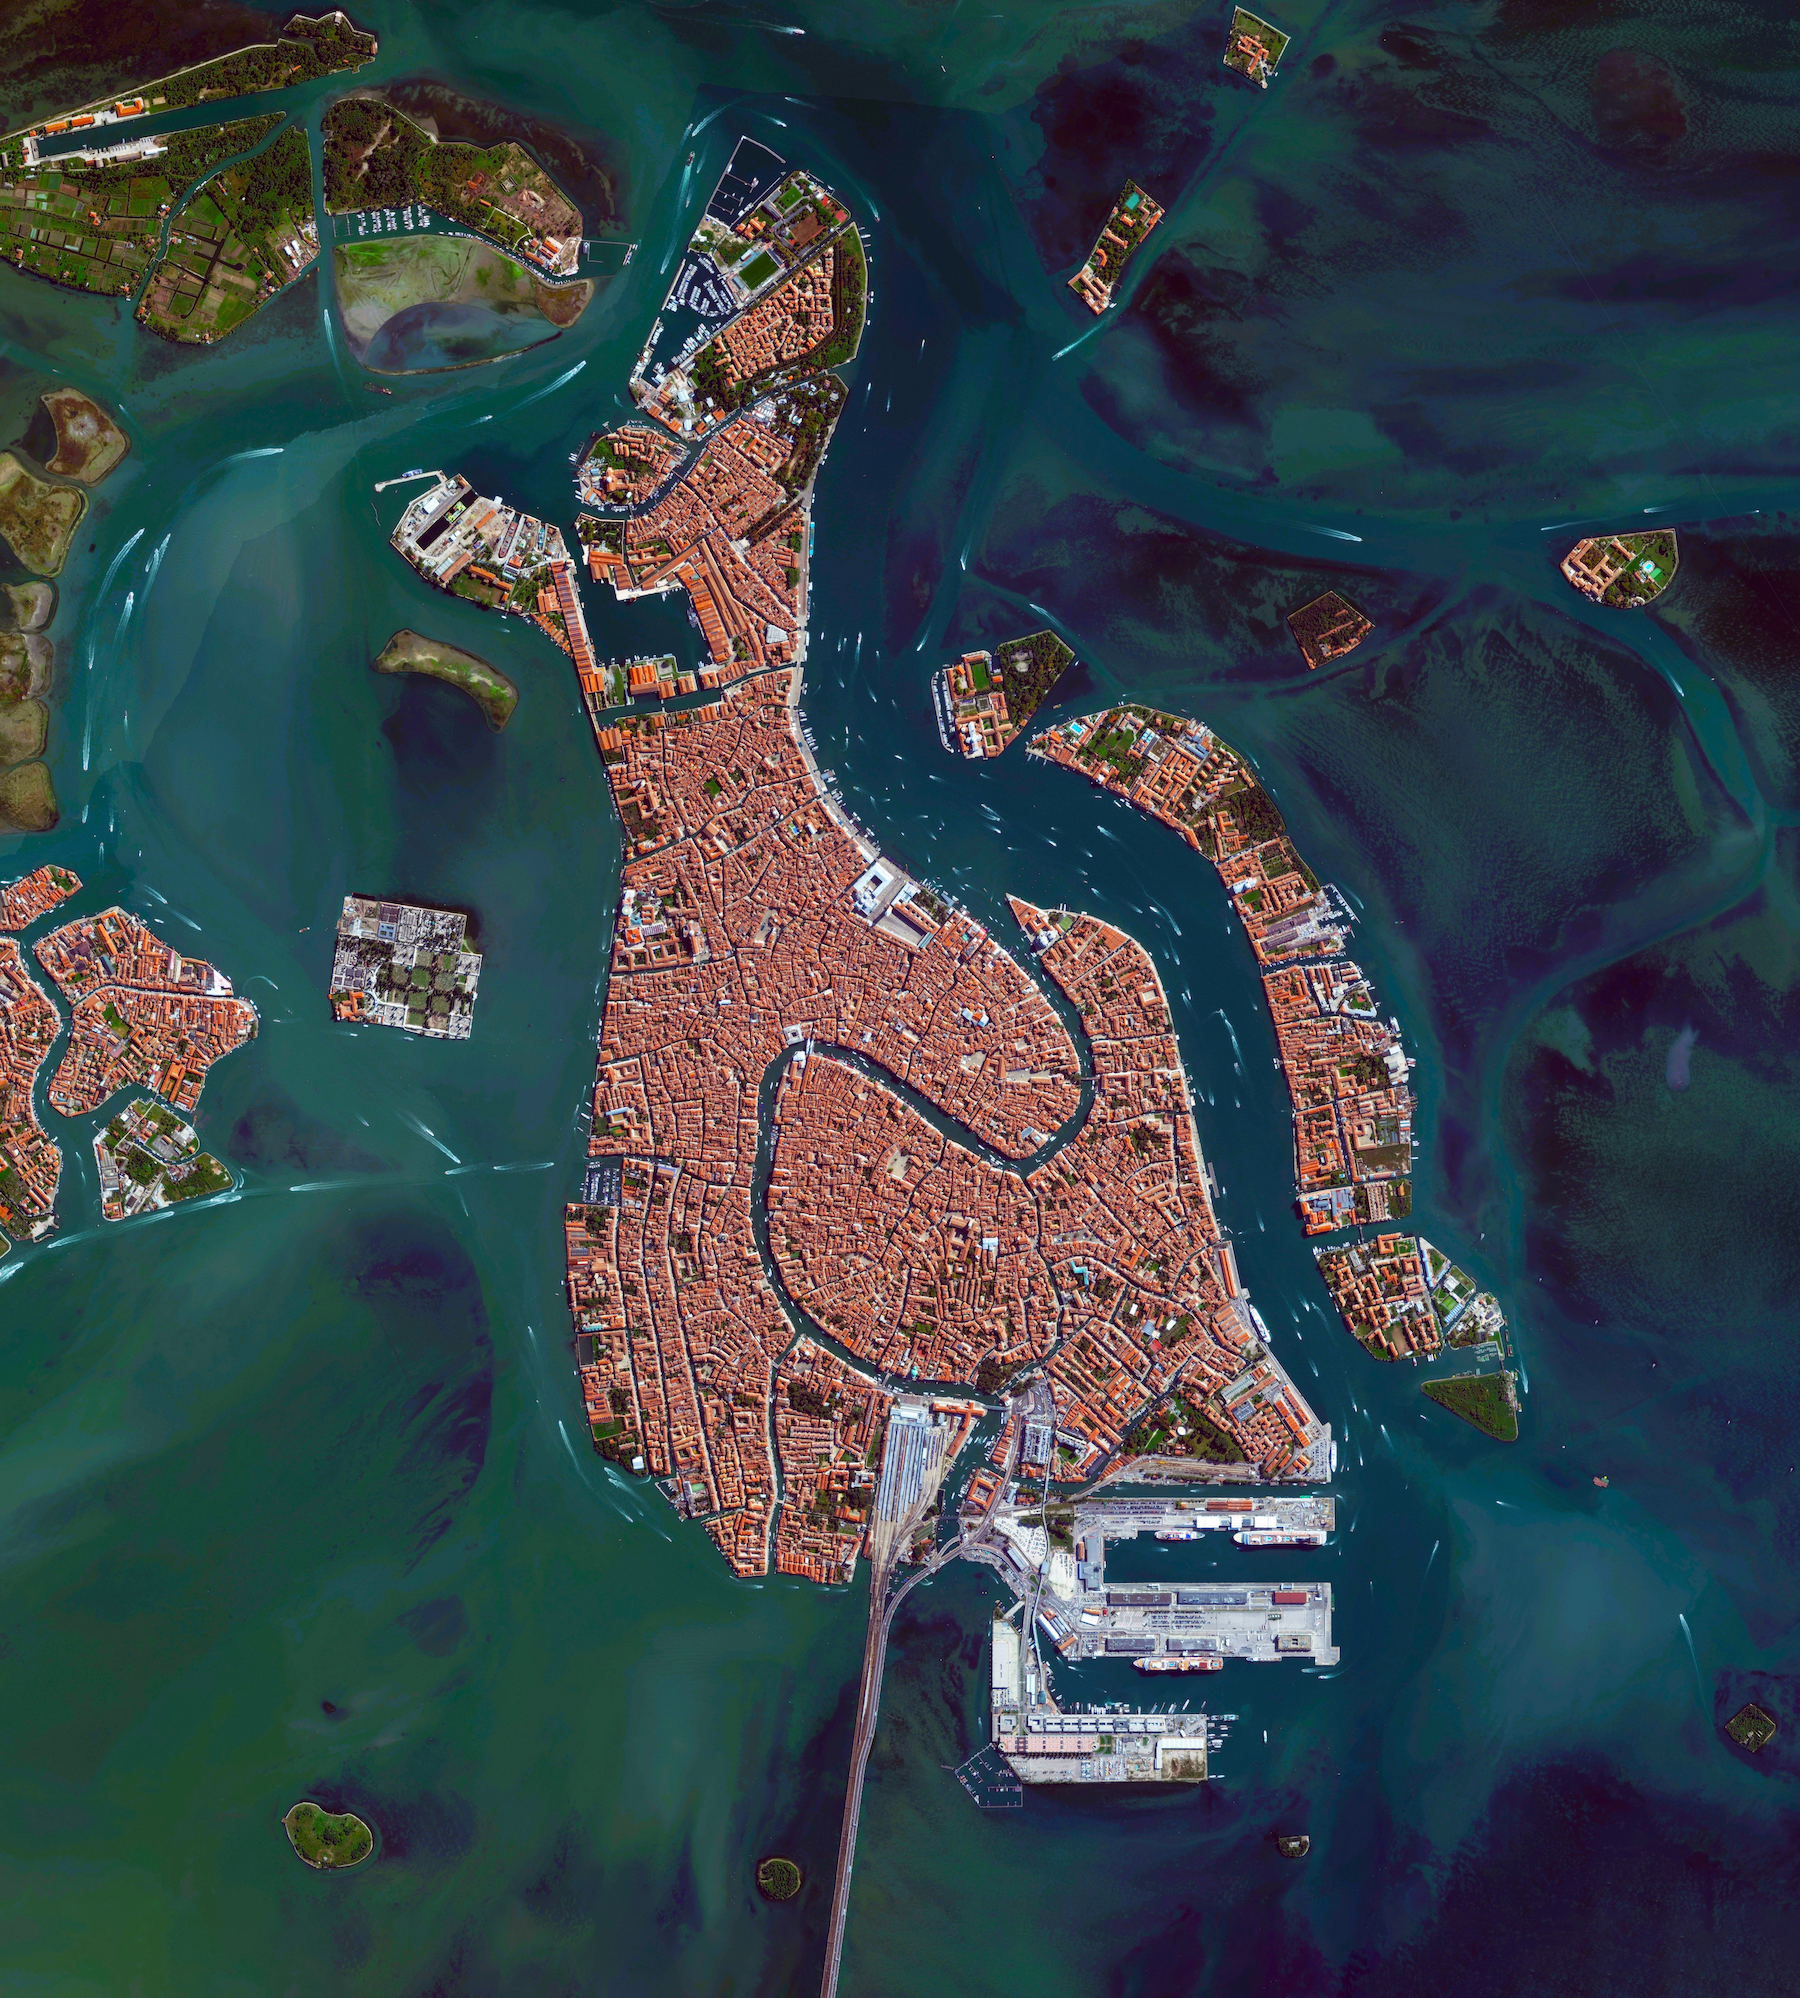 """11/17/2016  Venice  Venice, Italy  45.440995°, 12.323397°    Here's one of my favorite images from  """"Overview""""  - Venice, Italy. The city is situated upon 118 small islands that are separated by canals and linked by bridges. With its tide waters expected to rise to perilous levels, the city has constructed 78 giant steel gates across the three inlets, through which water from the Adriatic could surge into Venice's lagoon. The panels – which weigh 300 tonnes and are 92 feet (28 meters) wide and 65 feet (20 meters) high – are fixed to massive concrete bases dug into the seabed."""